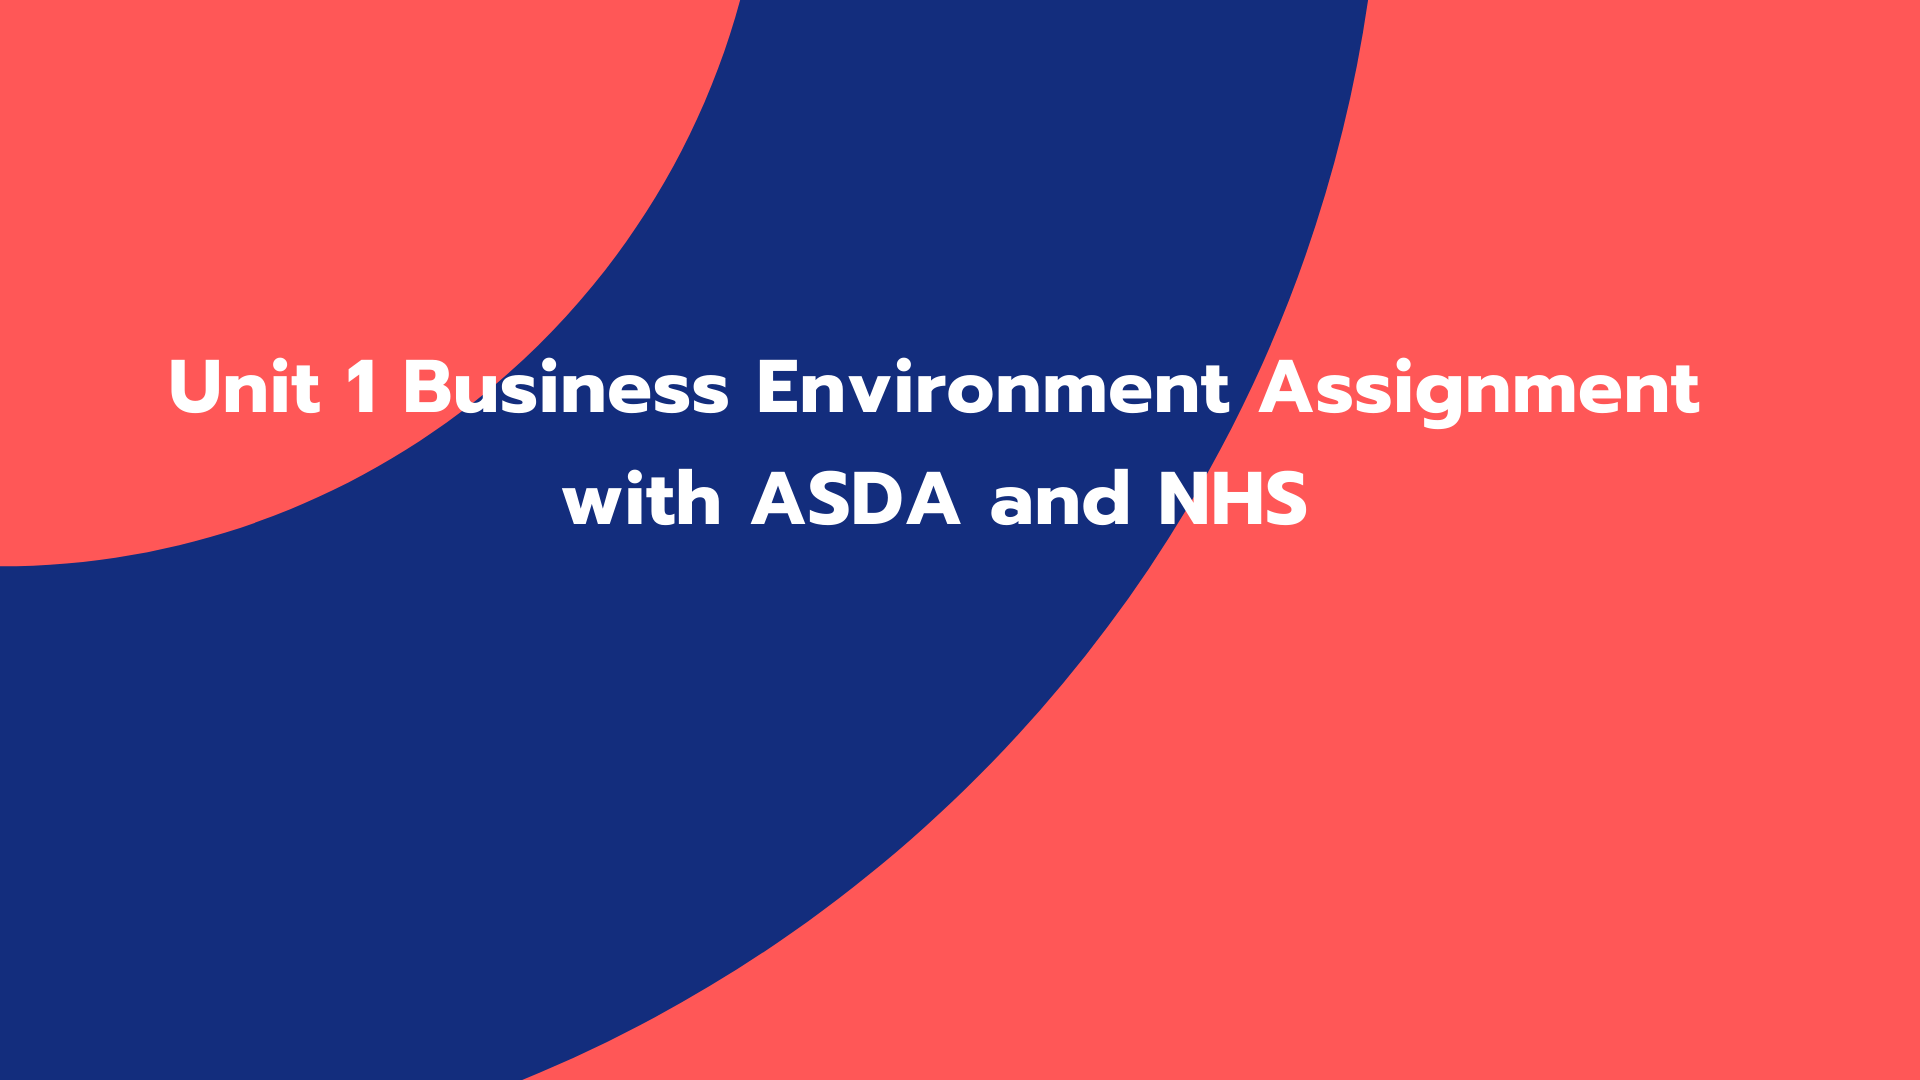 Unit 1 Business Environment Assignment with ASDA and NHS